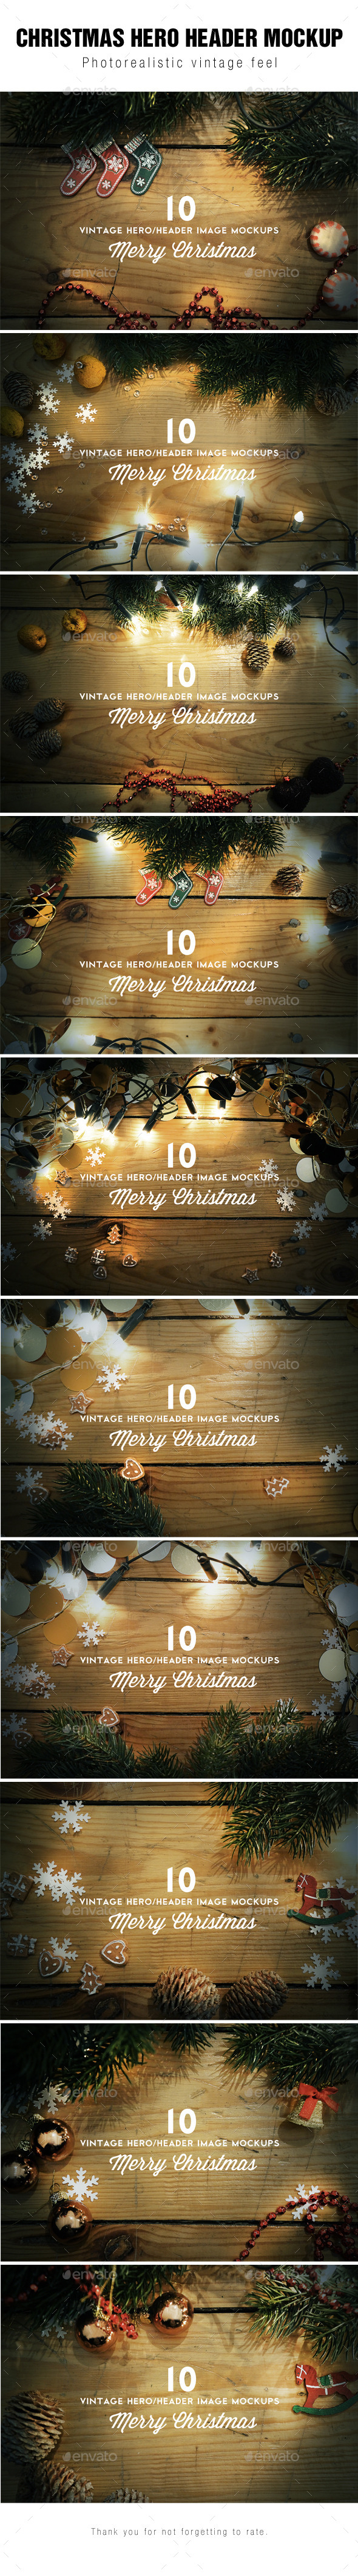 Christmas Hero / Header Images Mockup - Hero Images Graphics